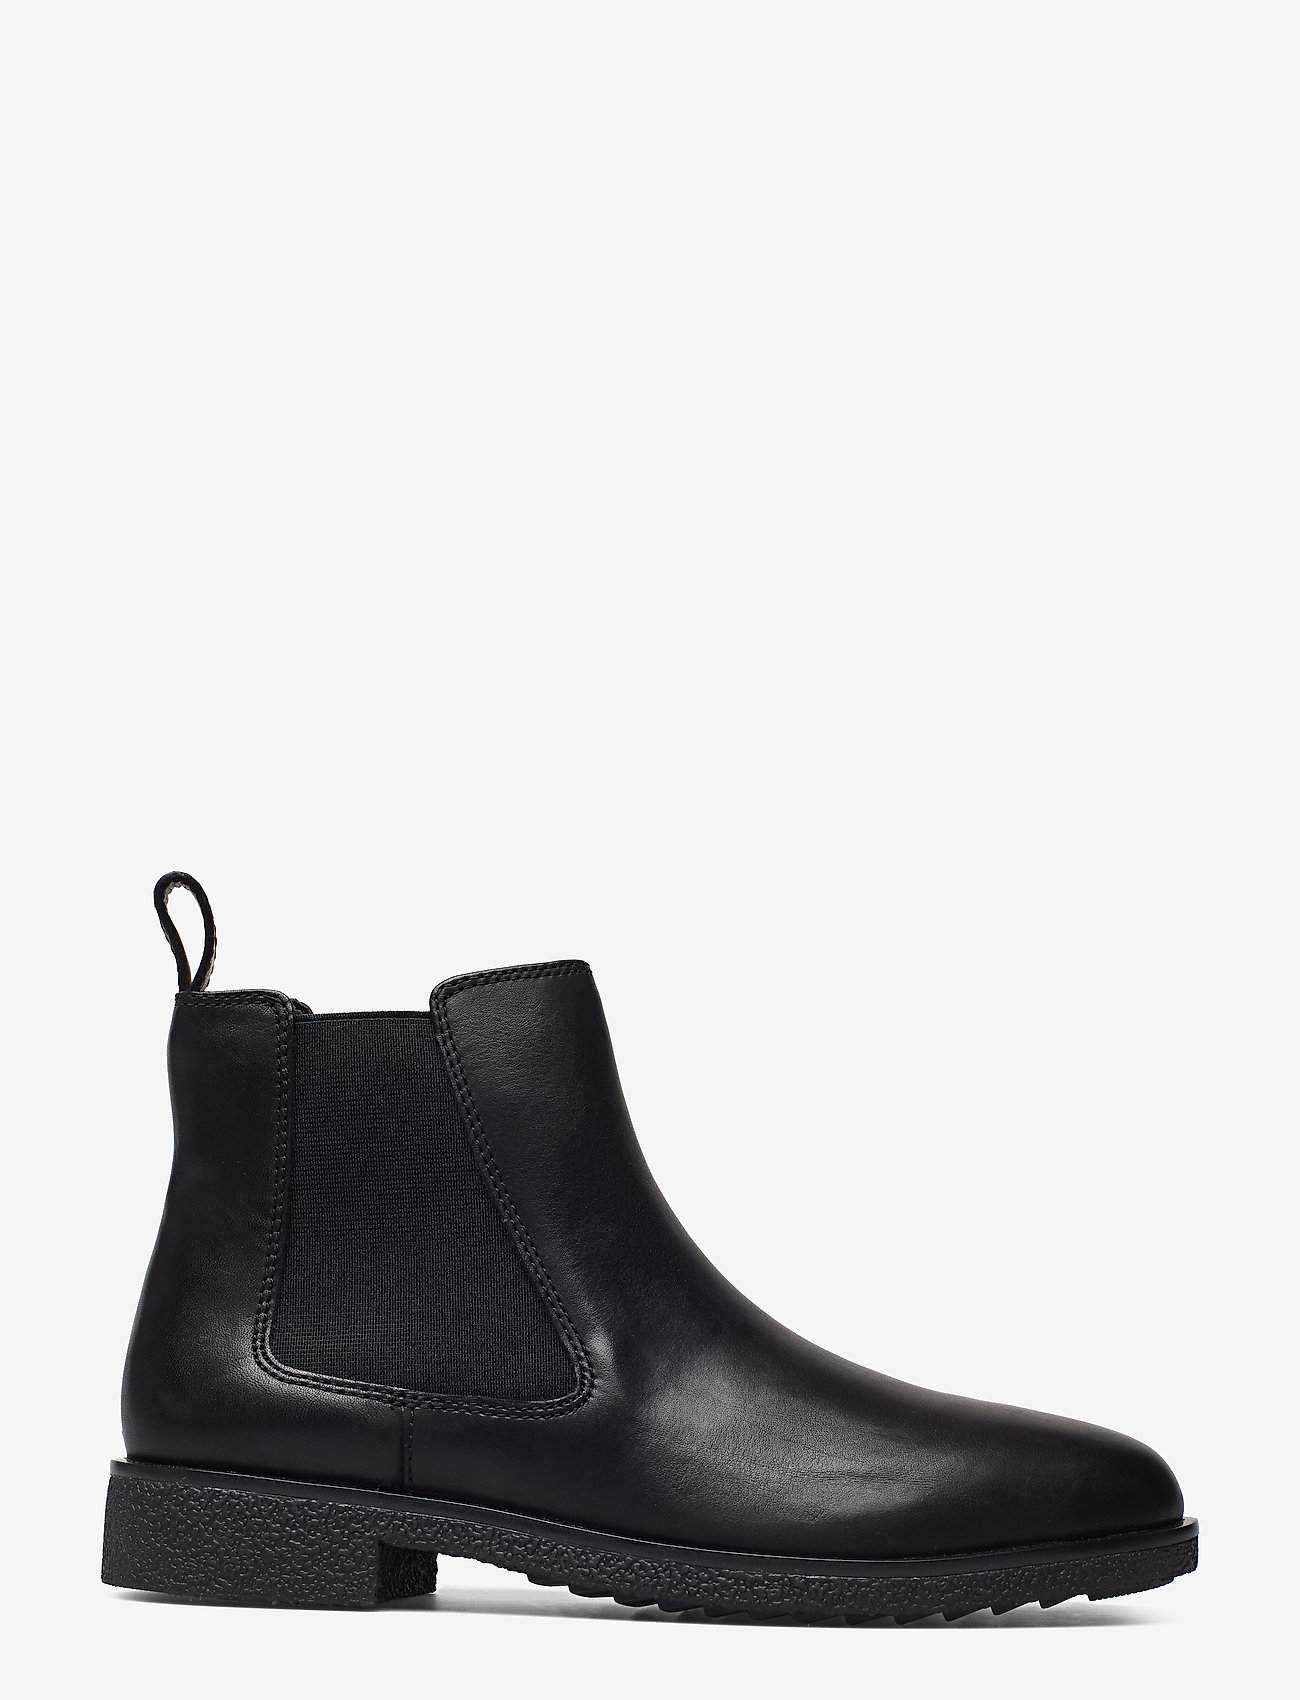 Griffin Plaza (Black Leather) - Clarks 5h50Ib